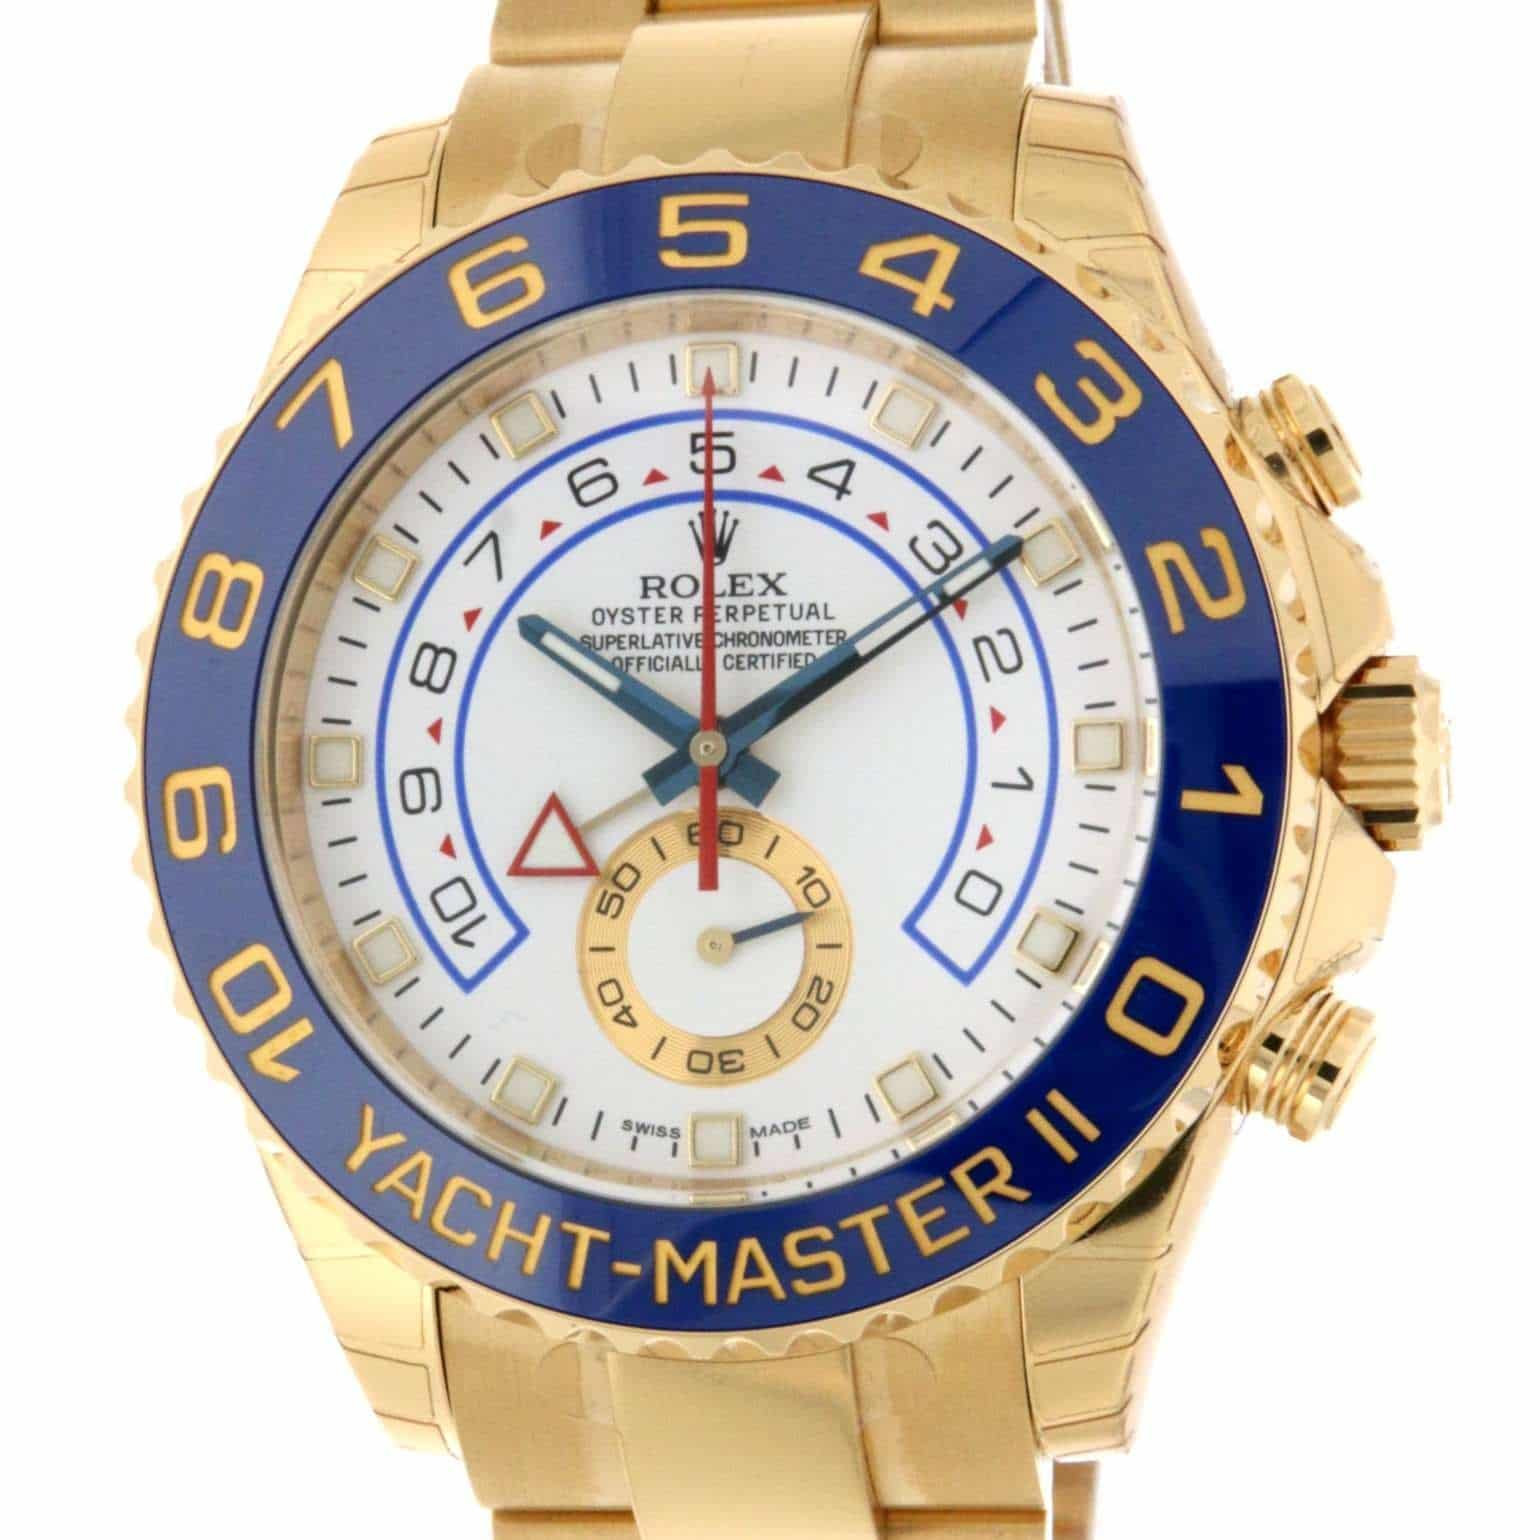 Rolex 116688-0002 Yacht-Master II OYSTER PERPETUAL 44 mm